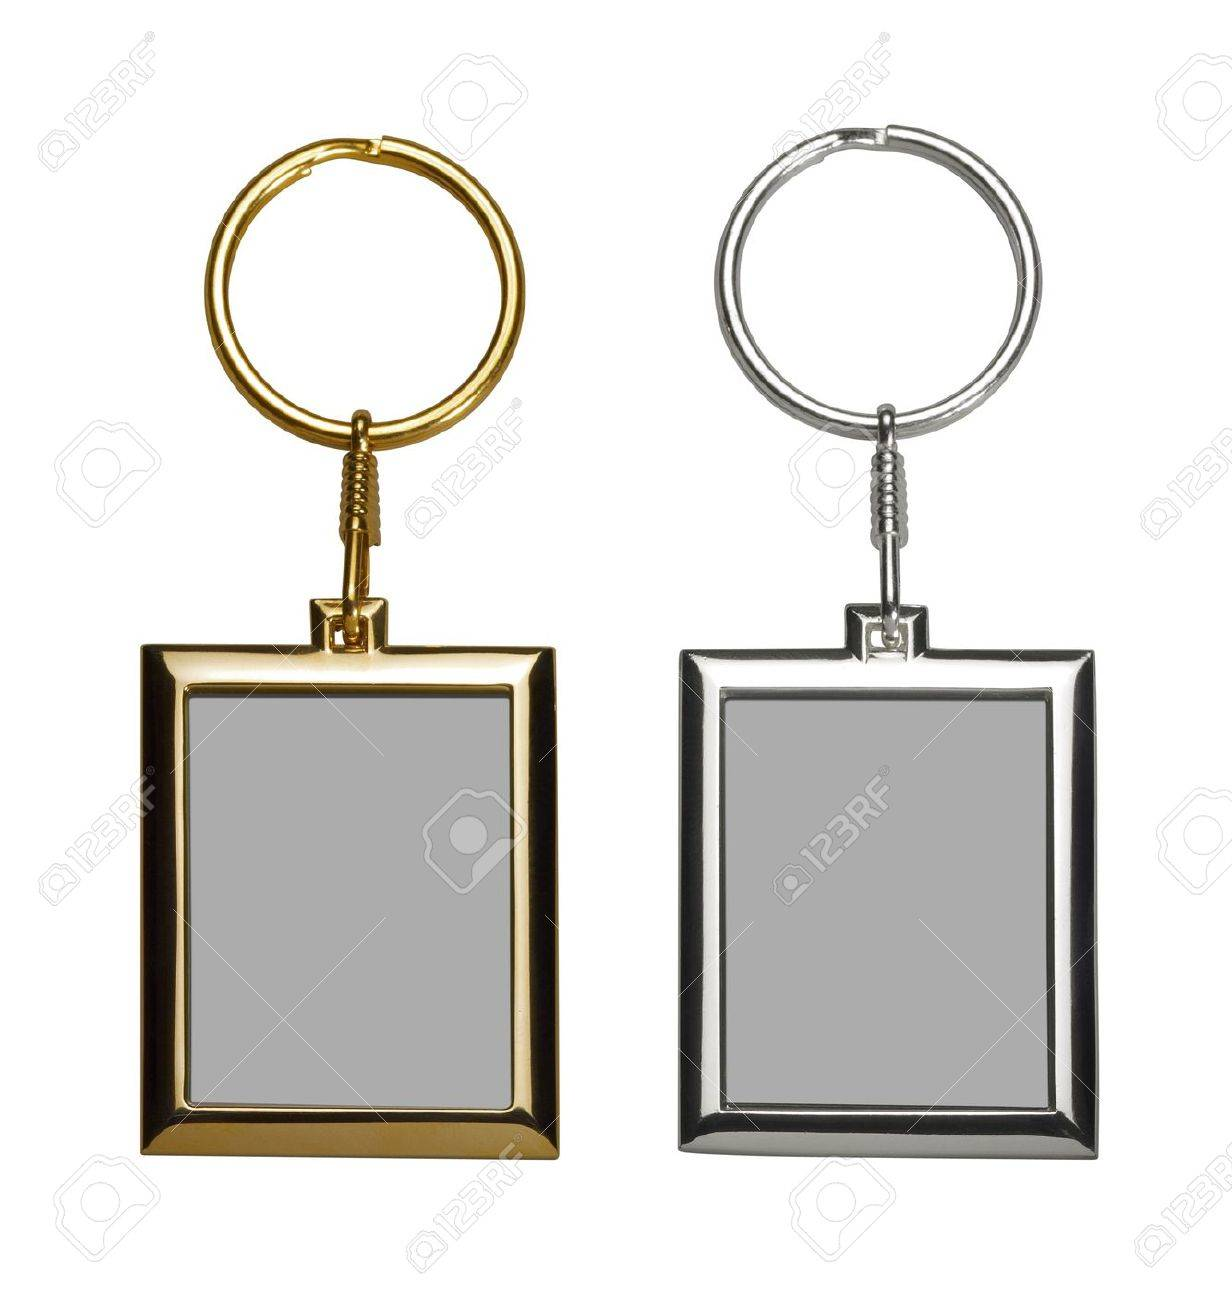 two gold and silver colored keychains with picture frame Stock Photo - 17587336